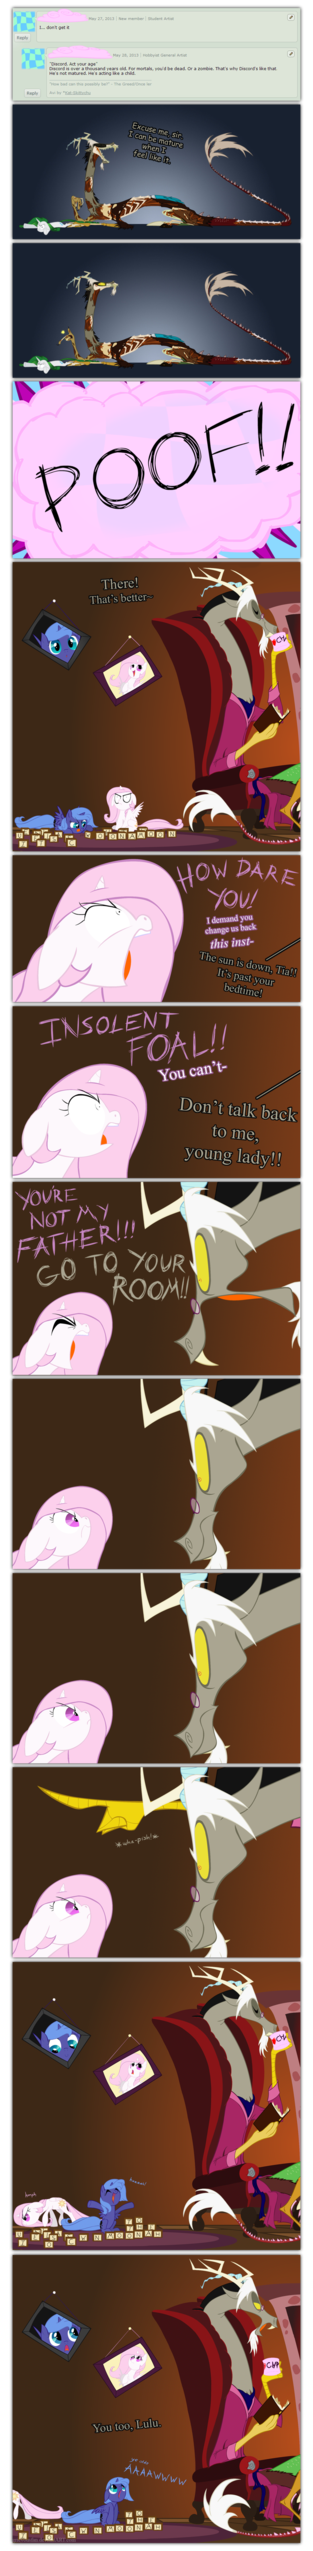 No Maturity Here Either by *grievousfan on deviantART